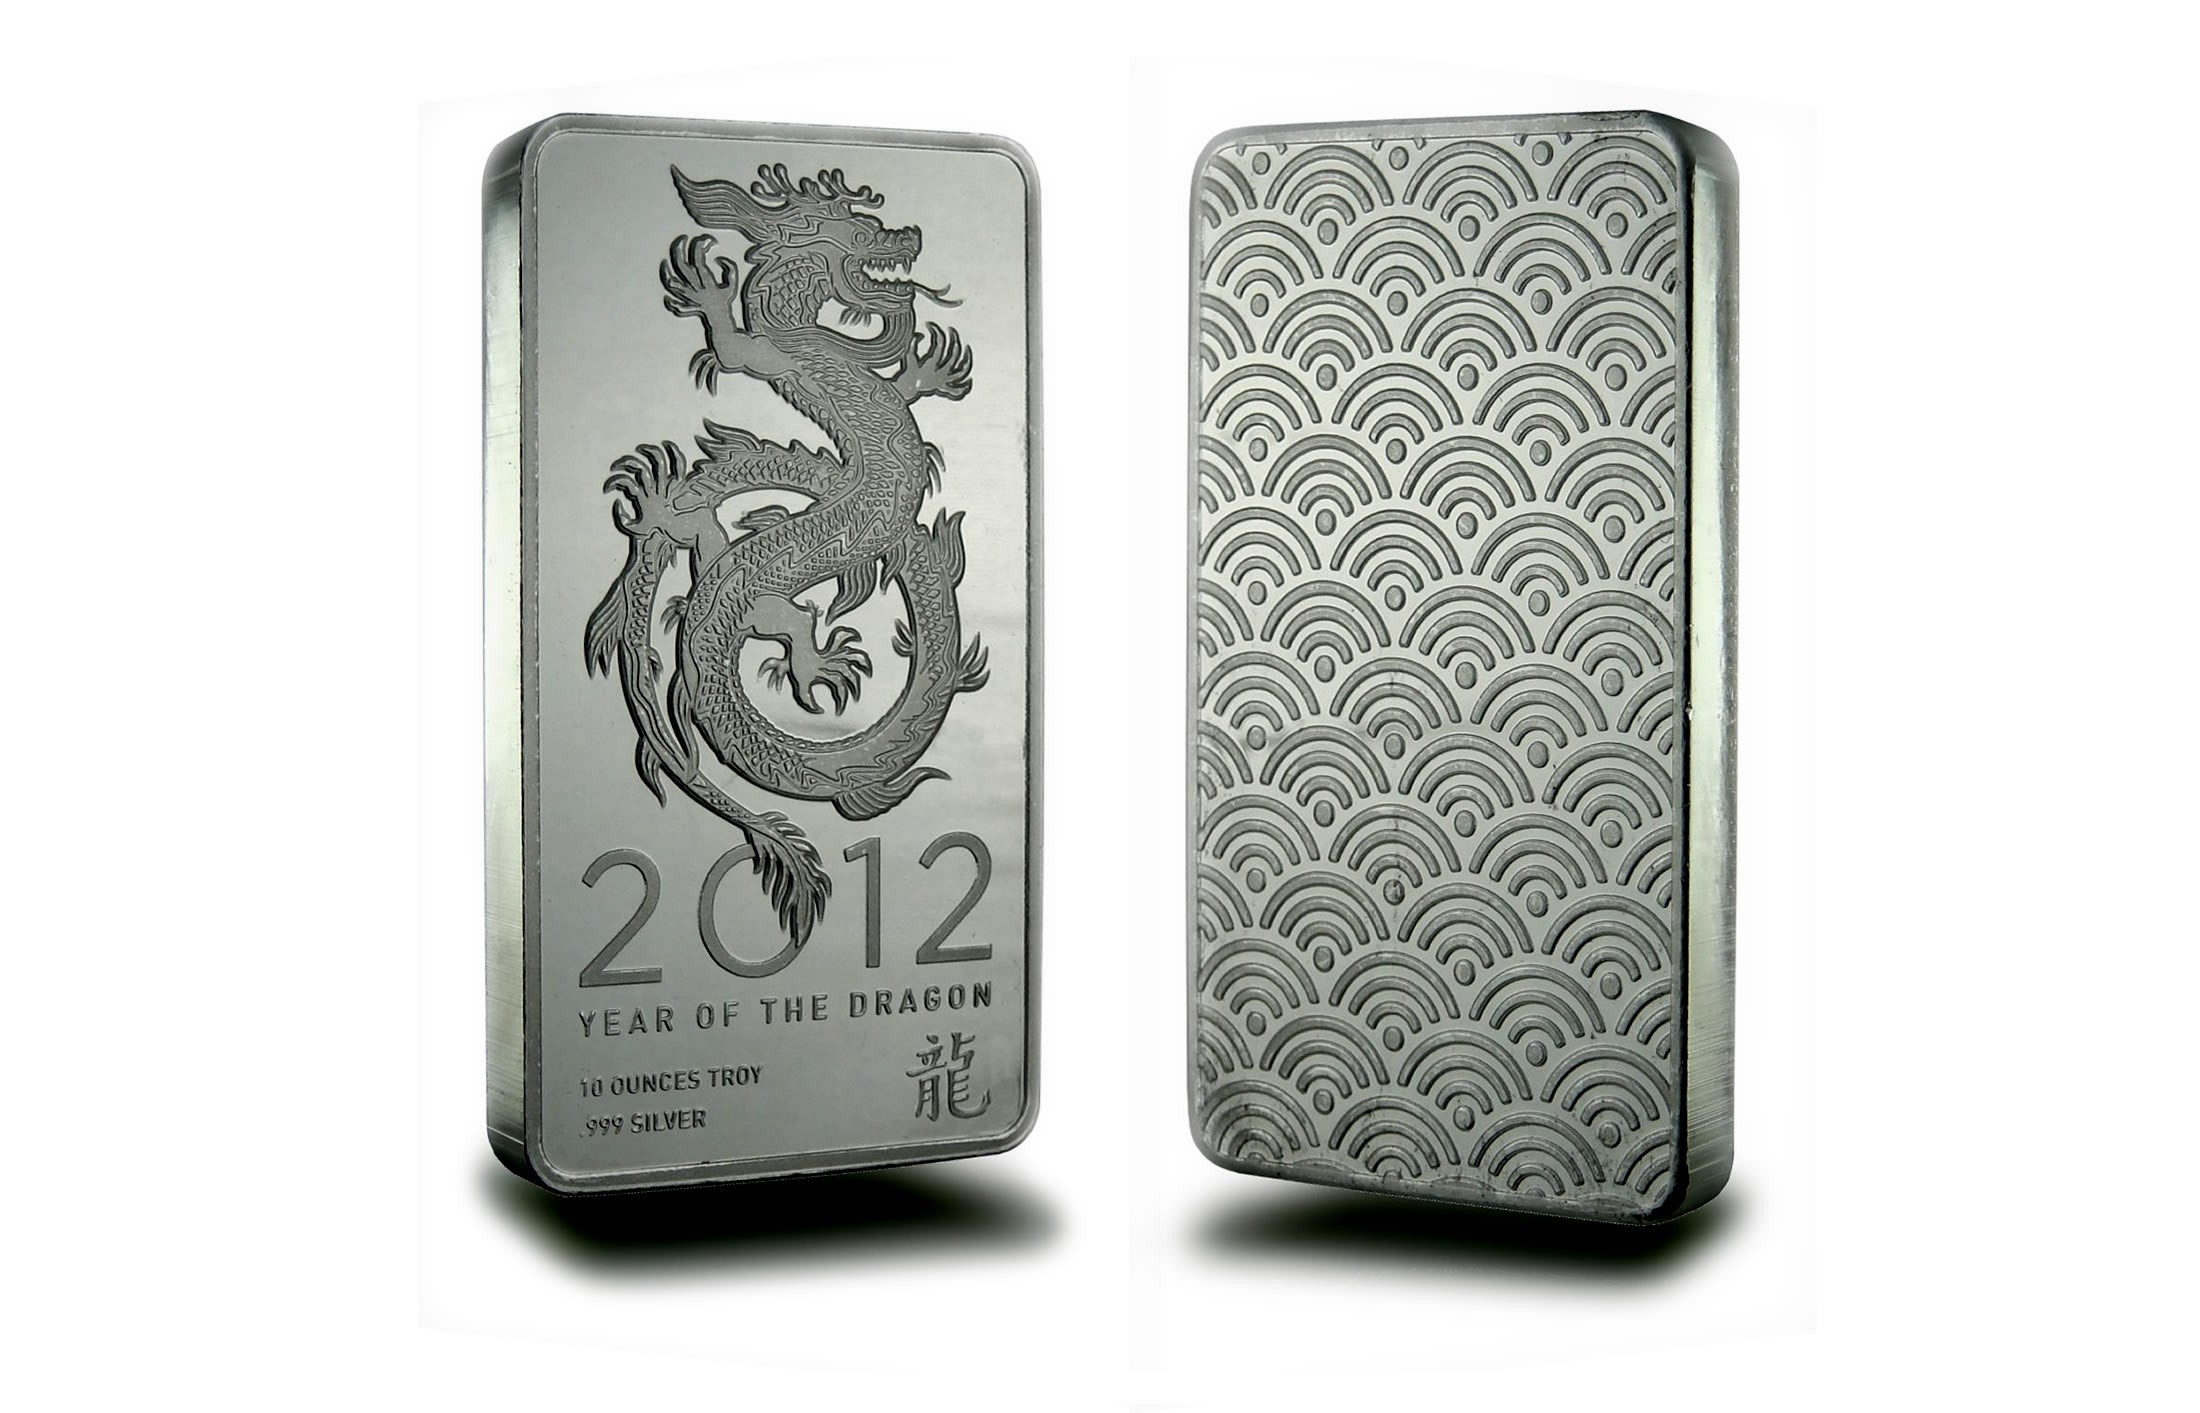 2012 Year Of The Dragon 10 Oz Silver Bar 999 Fine